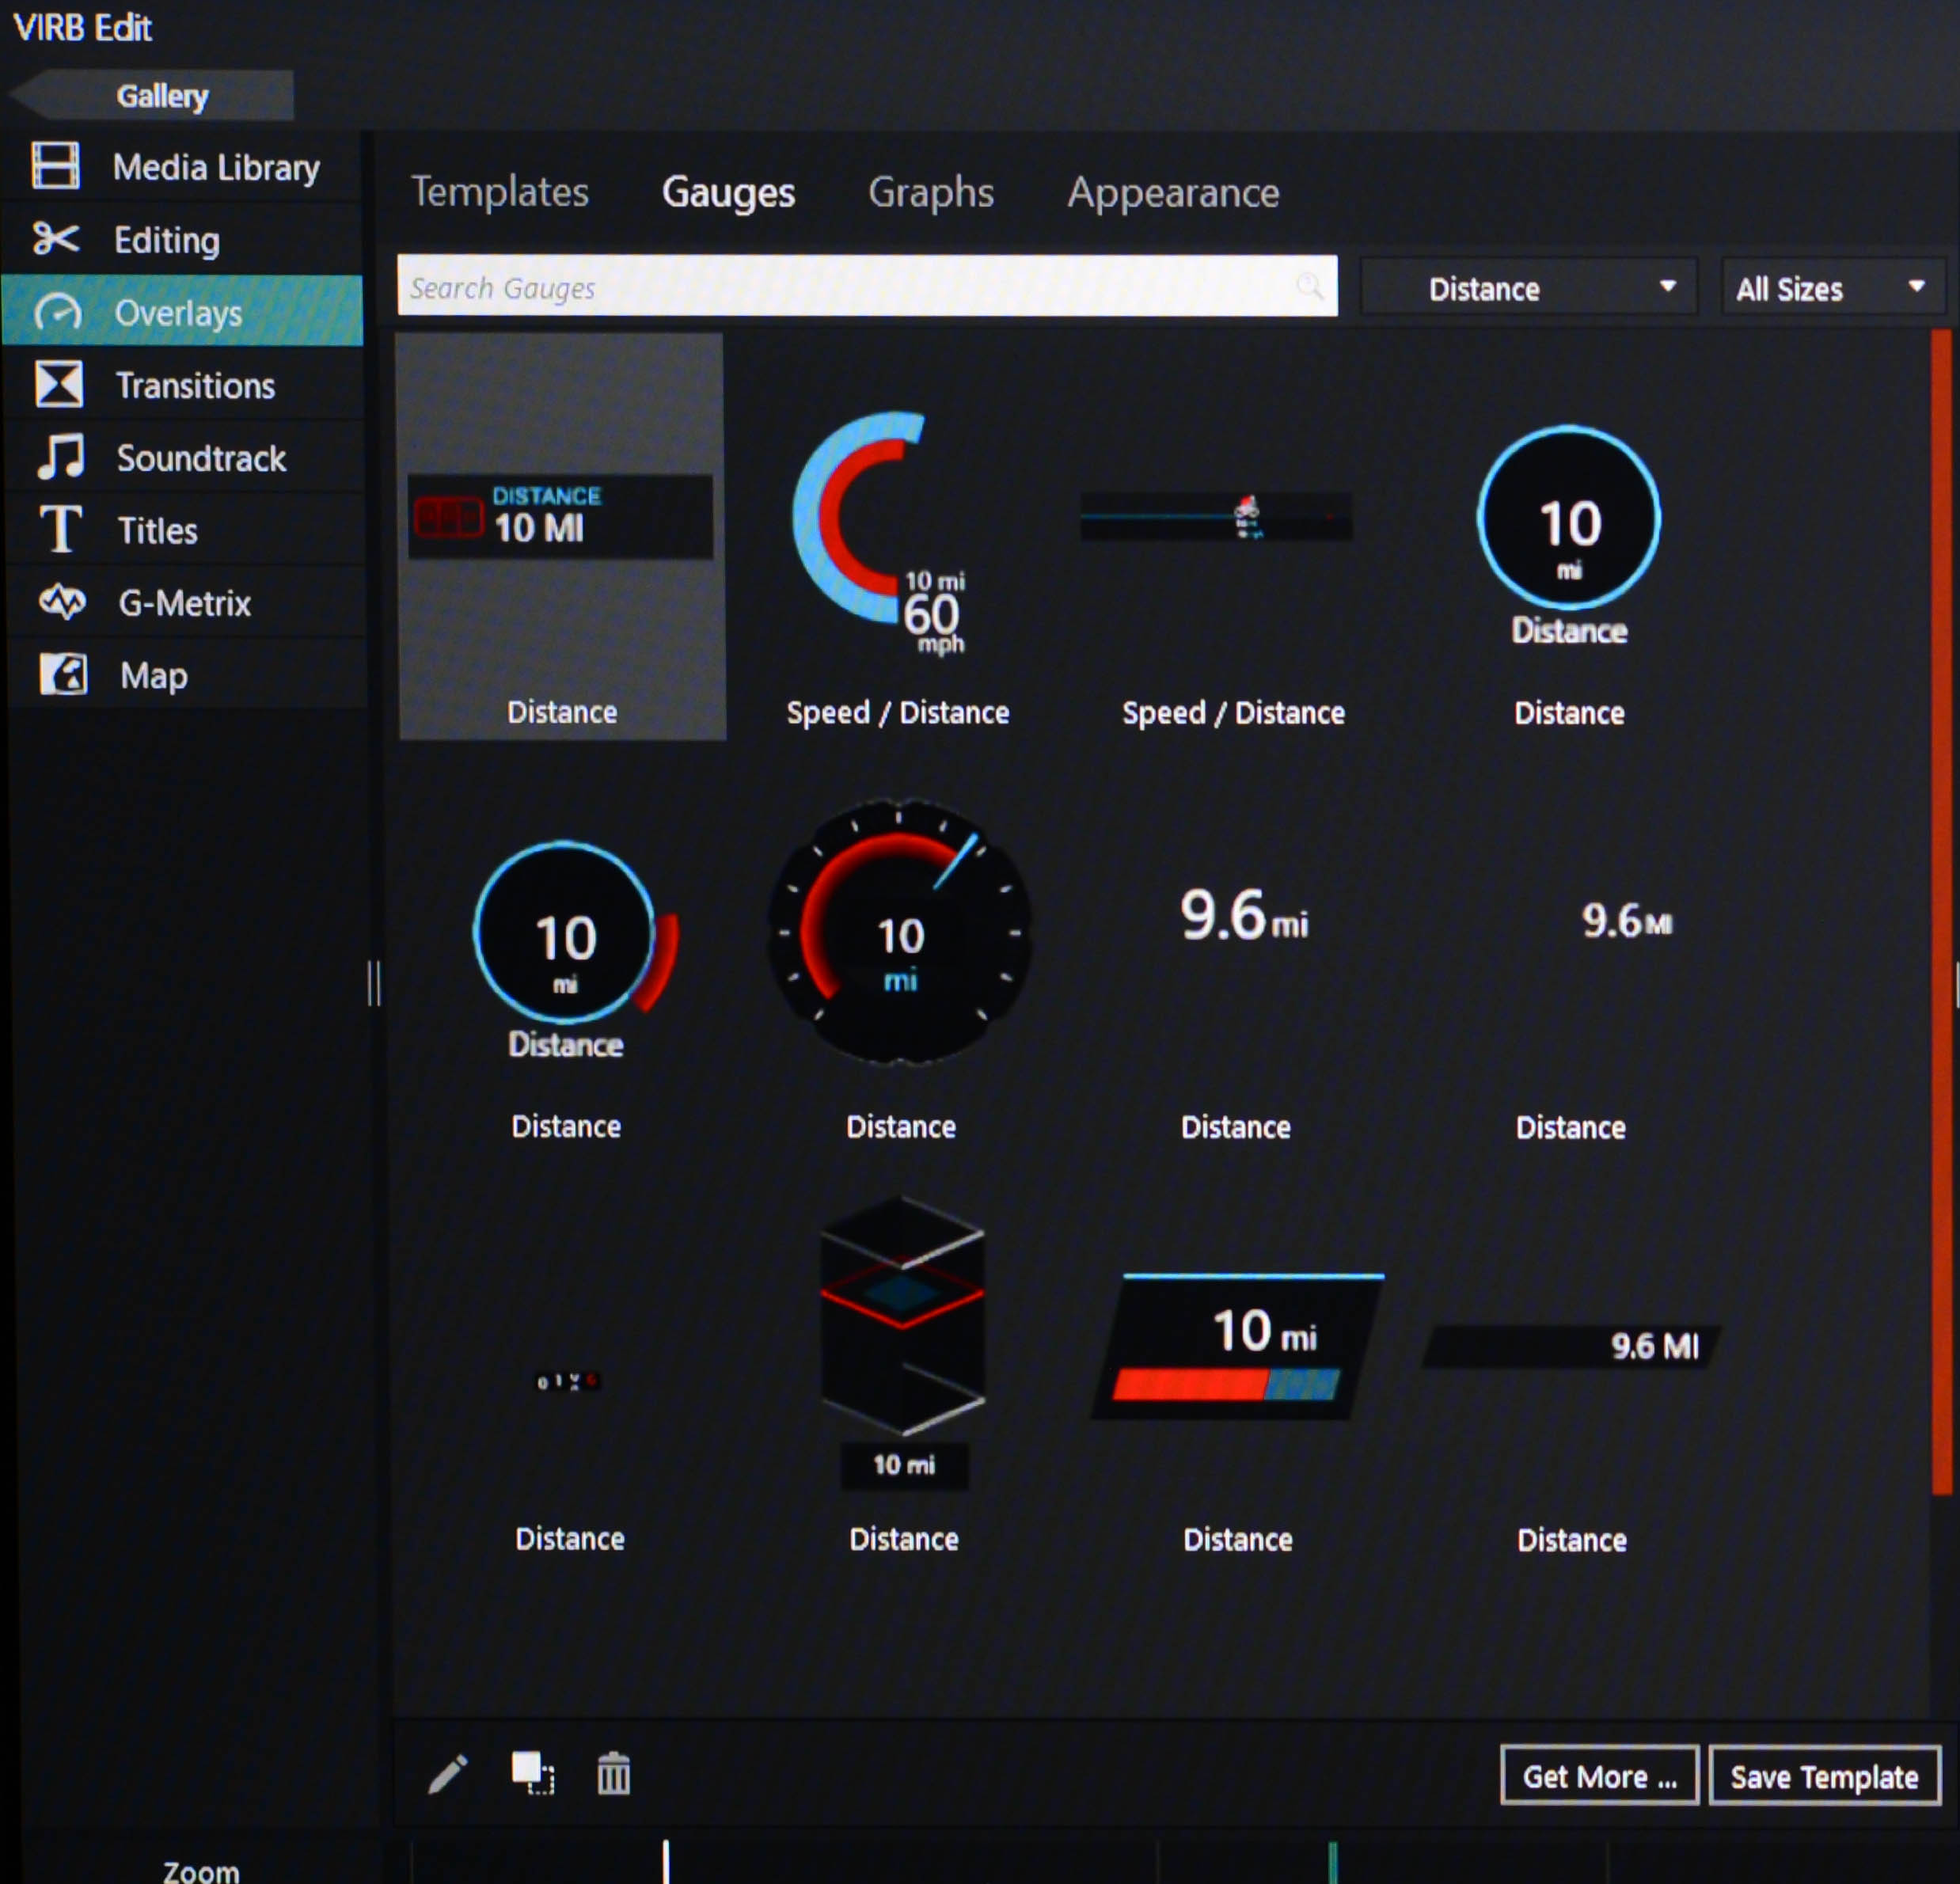 There are tons and tons of gauges, graphs, and overlays to customize your data presentation on the screen, everything from engine temp to hangtime to rotations in the air. Sweet.